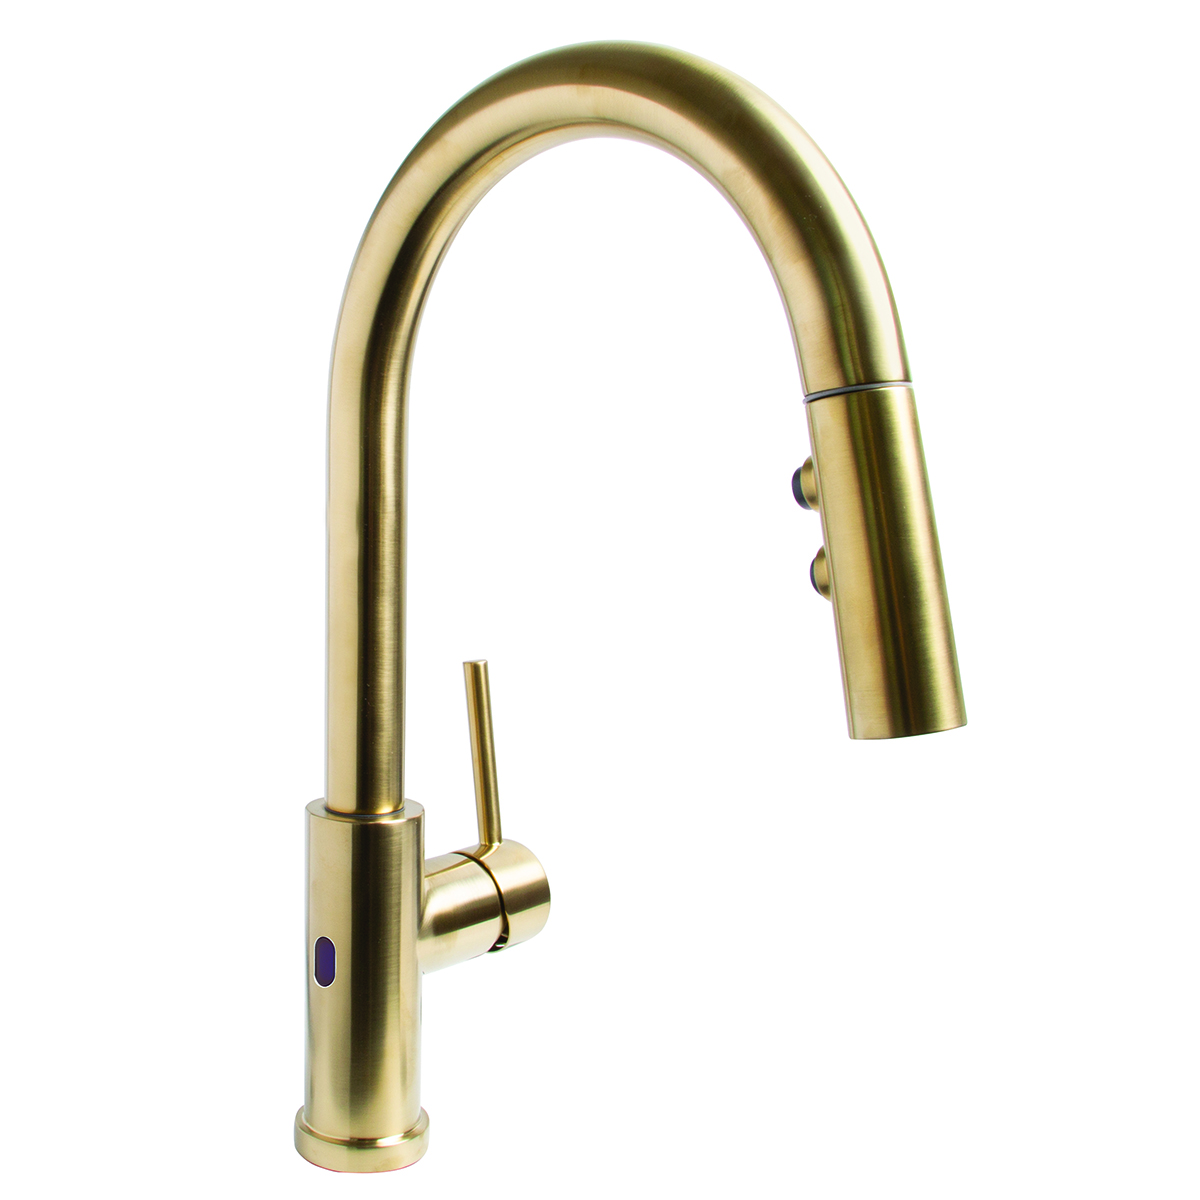 Neo Sensor Pull Down Kitchen Faucet - BRB